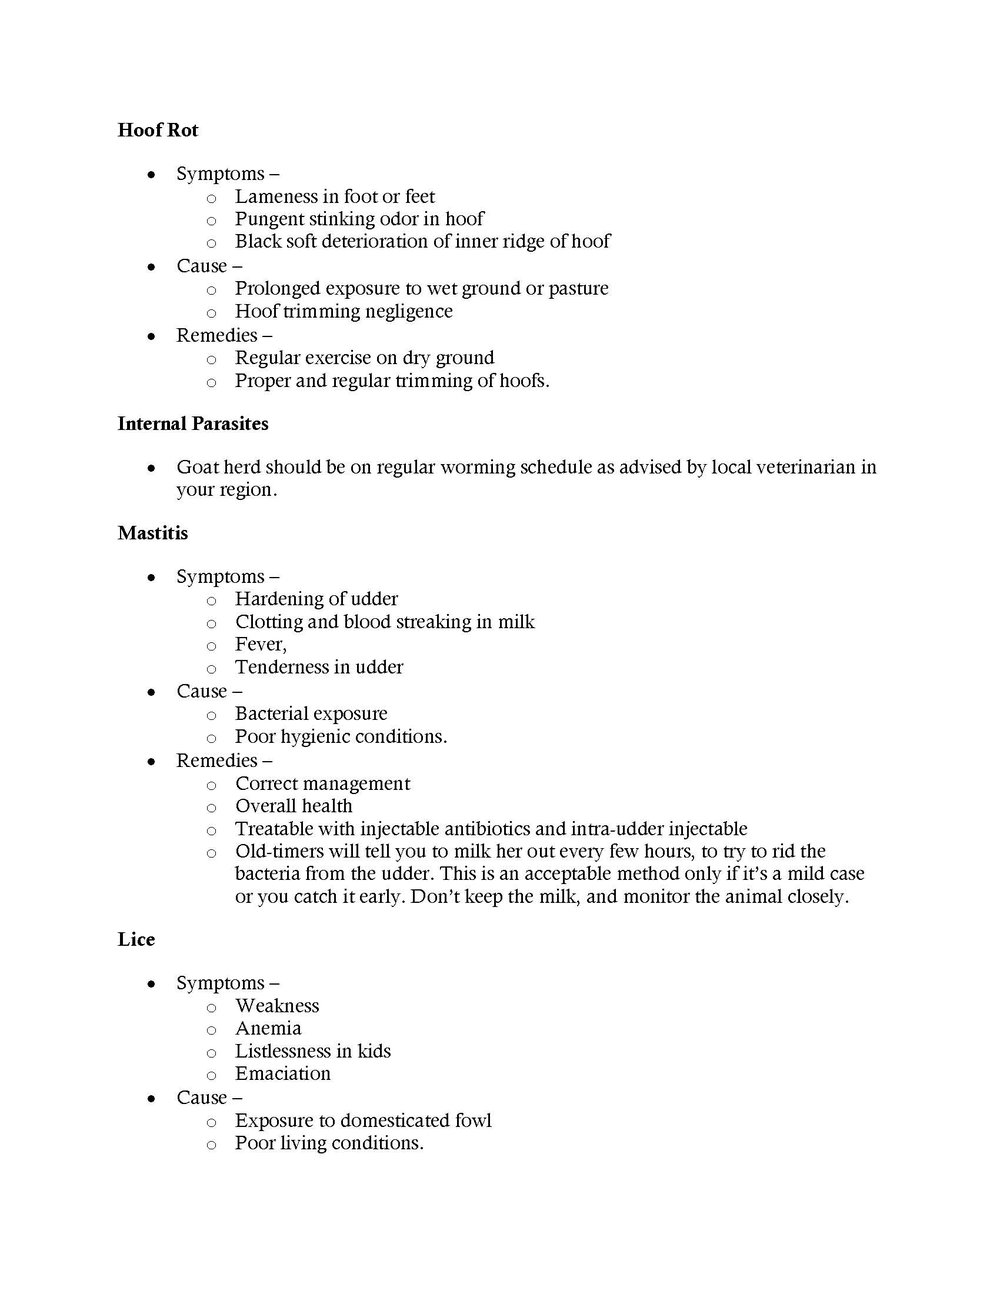 RFC Class Outlines_Page_07.jpg